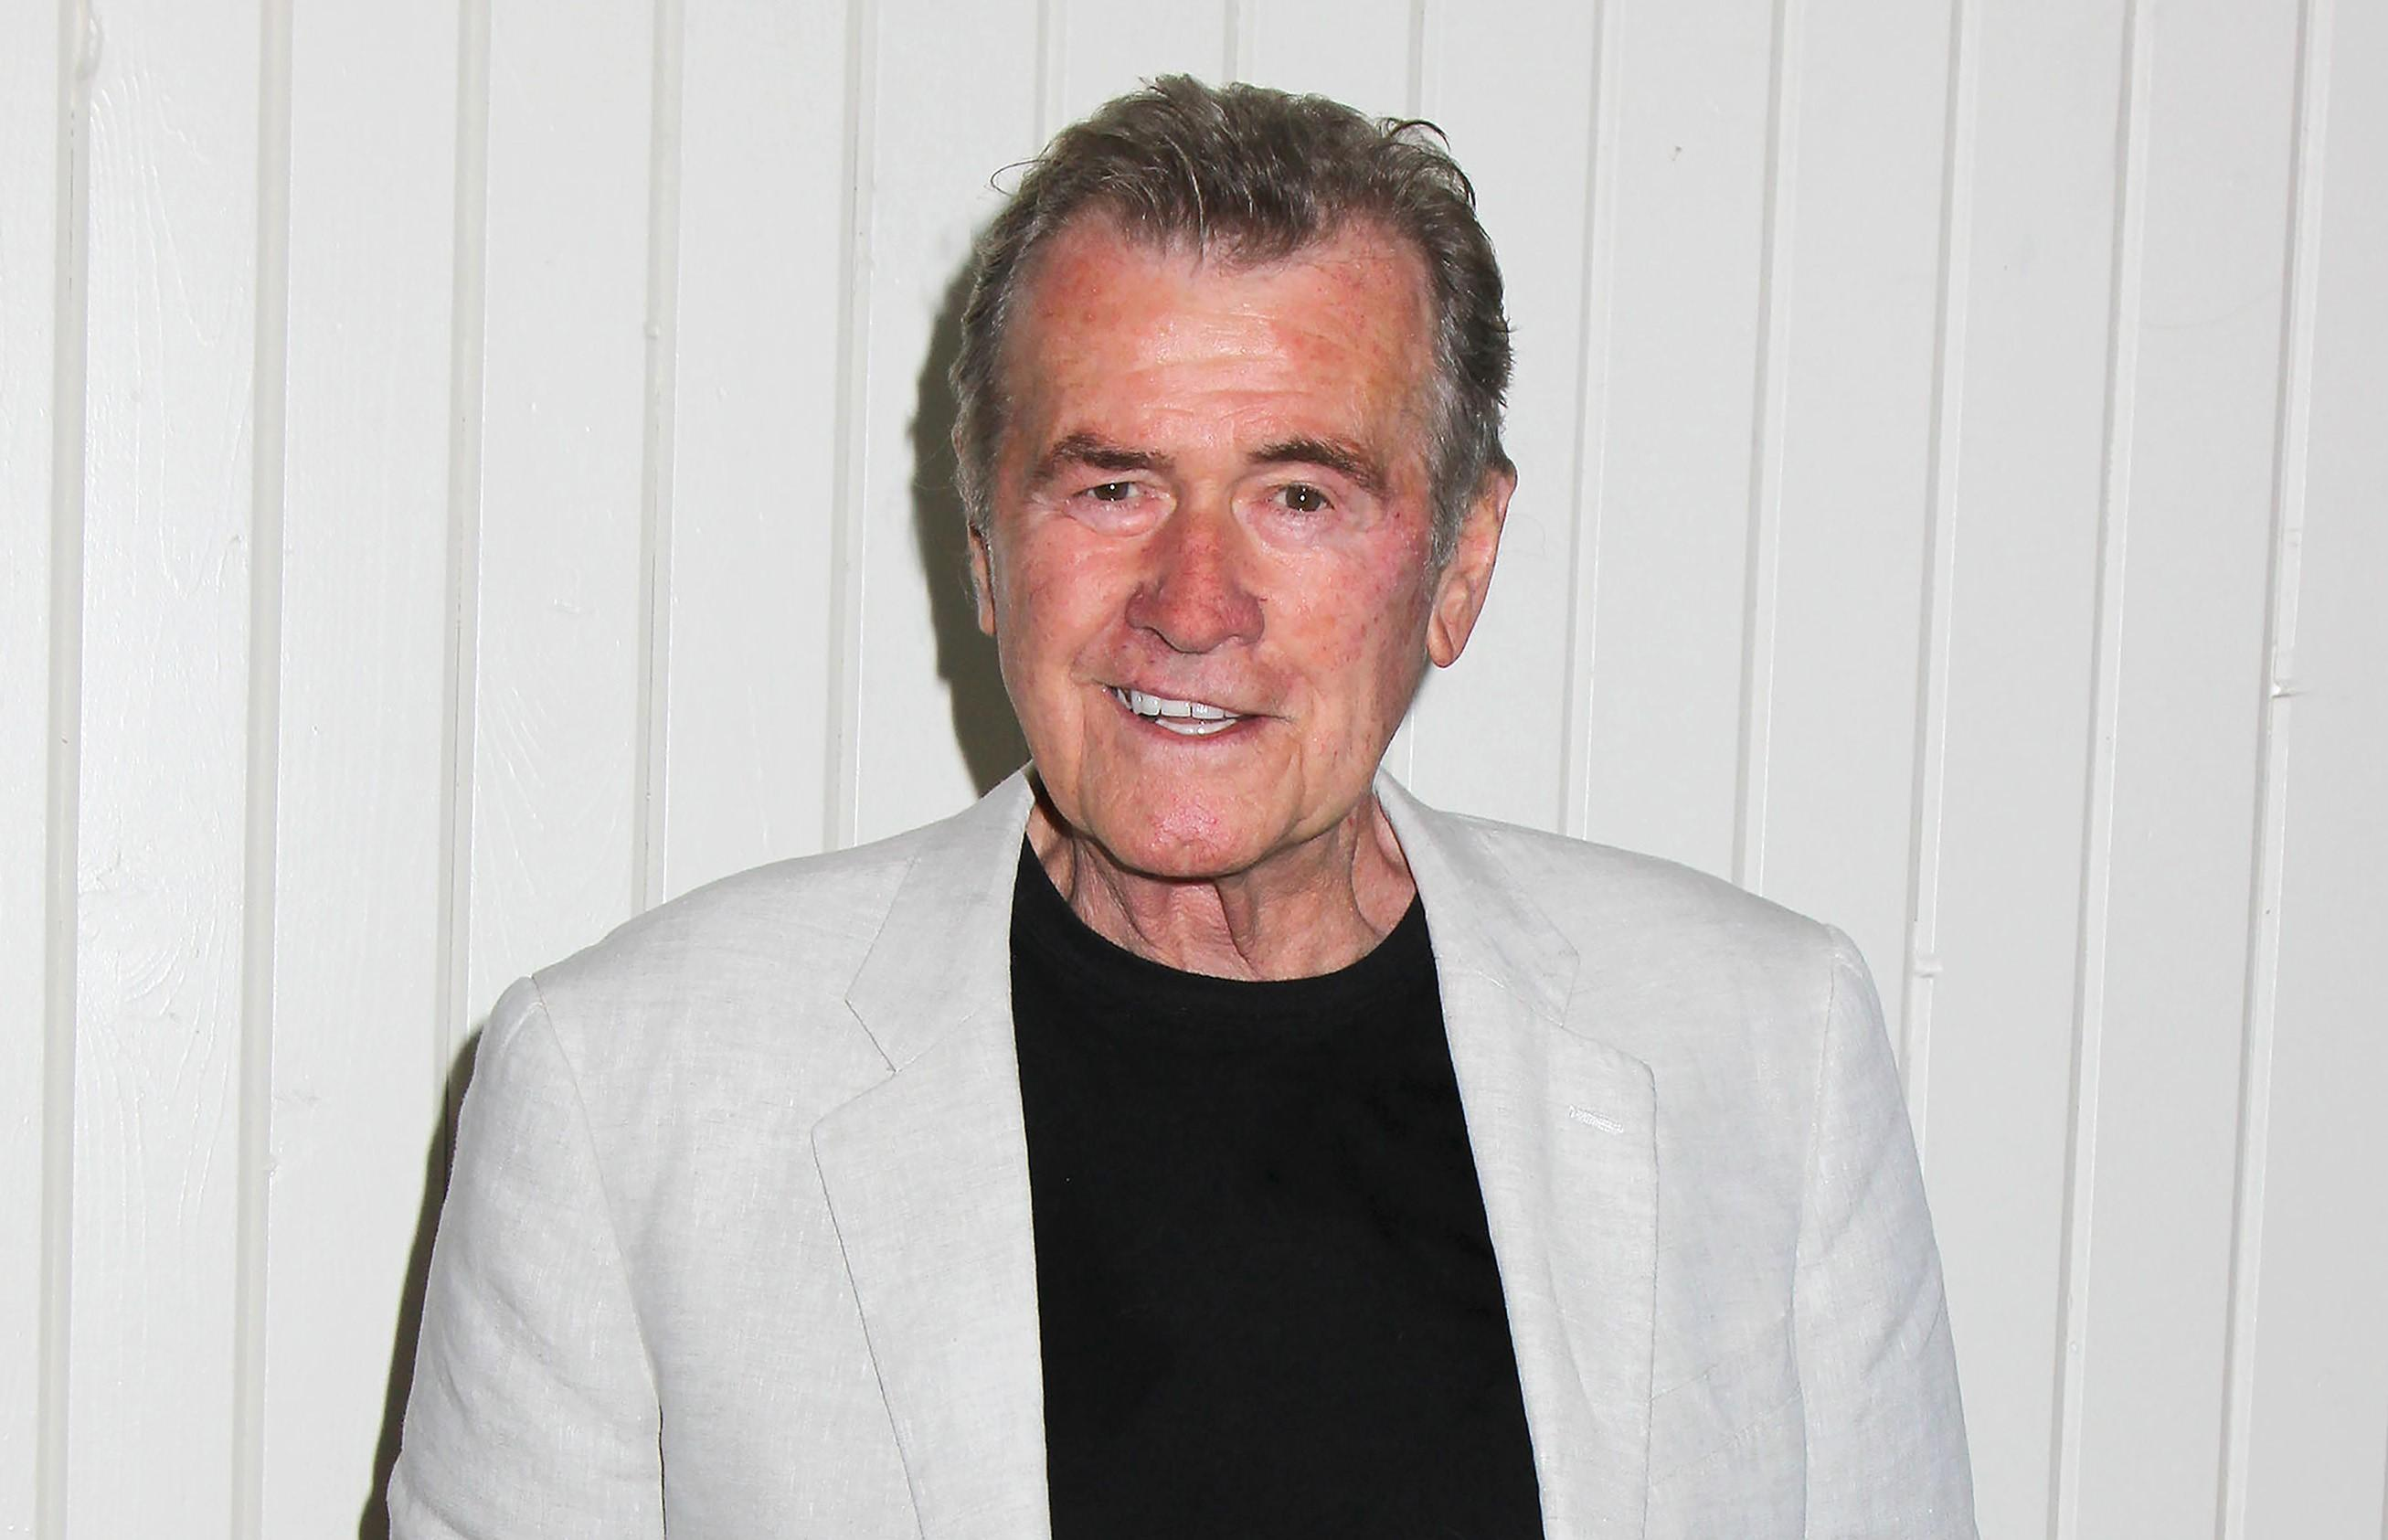 'General Hospital' And '90210' Soap Actor John Reilly Has Died At 84 Years Old